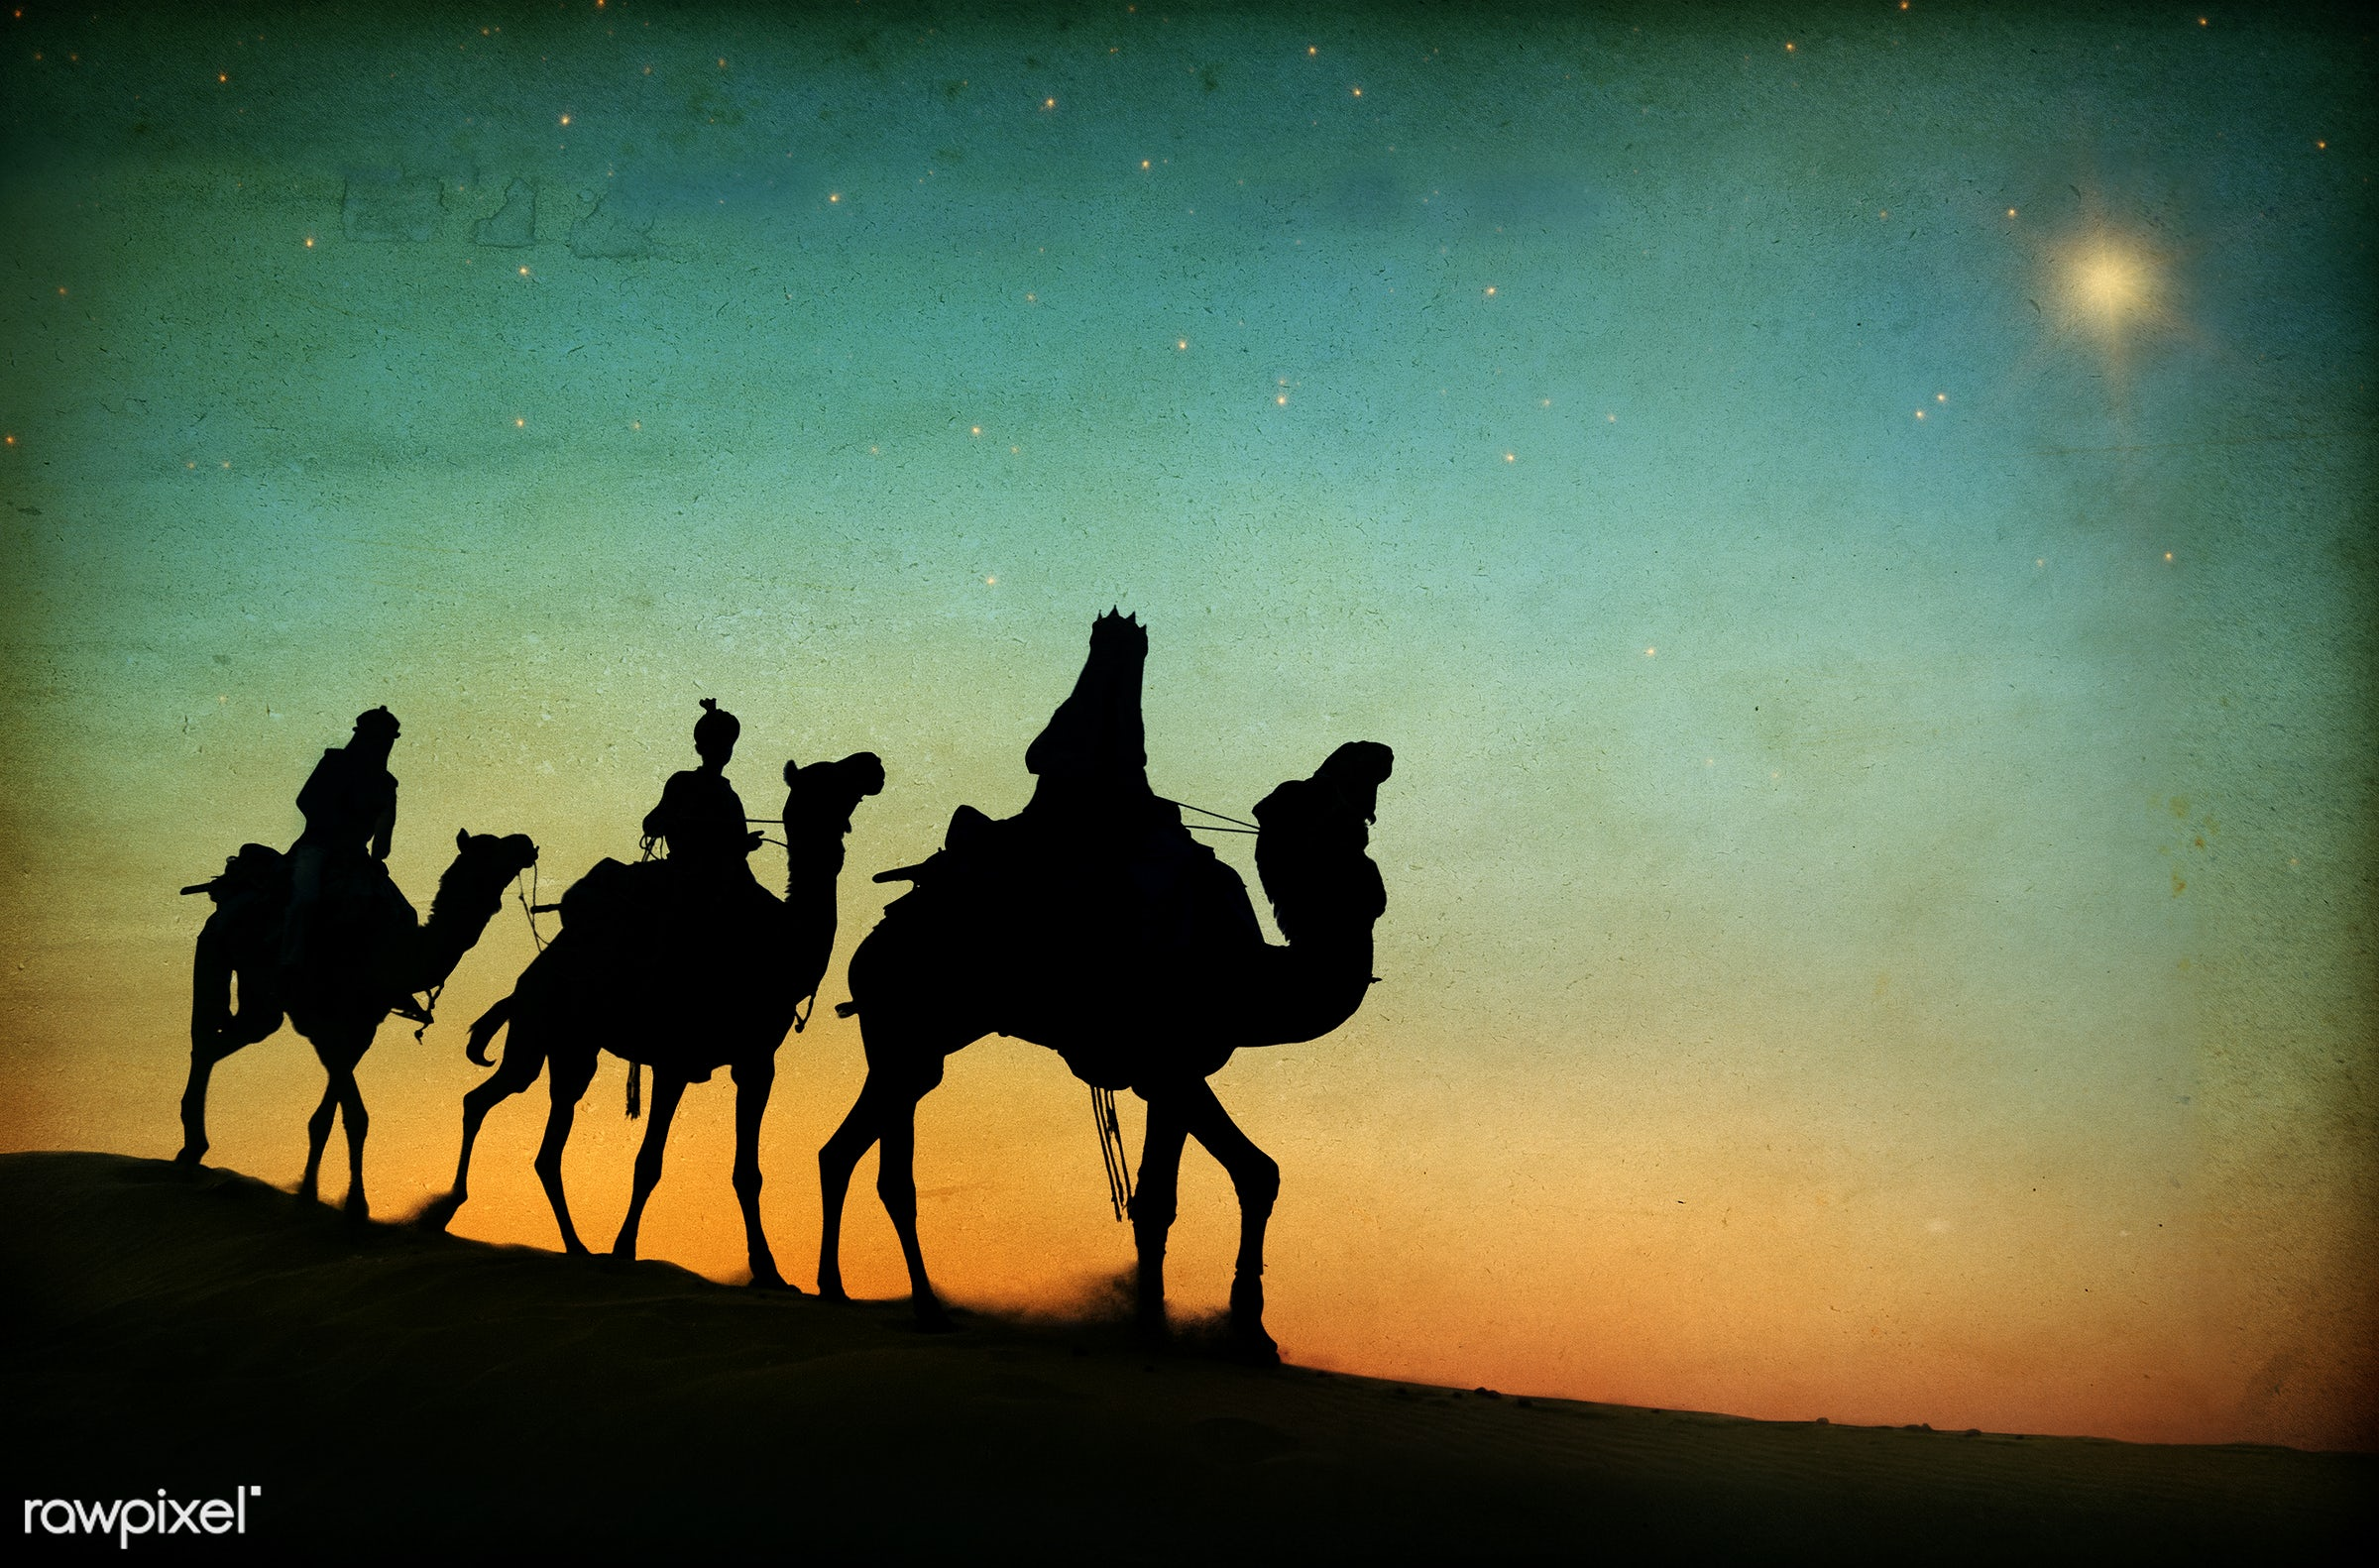 The three kings following the star. - 3 kings, birth, camel, christmas, concepts and ideas, culture, desert, dusk, evening,...